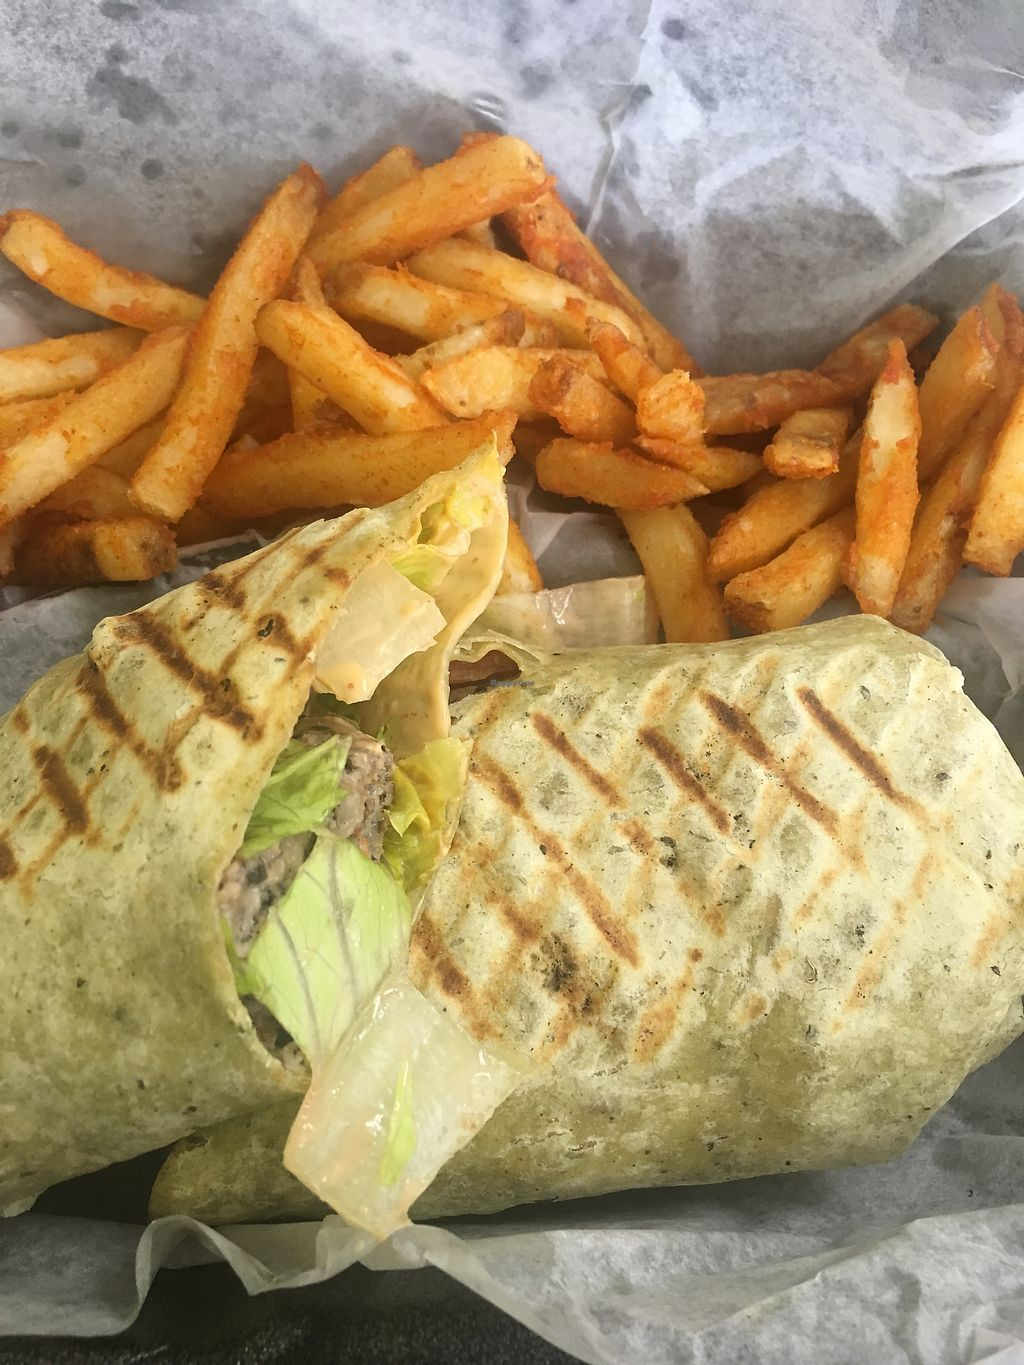 """Photo of Sprout Natural Choice  by <a href=""""/members/profile/keonnalock"""">keonnalock</a> <br/>Black bean wrap,fries (yes I'm cheating lol)  <br/> September 14, 2017  - <a href='/contact/abuse/image/48508/304353'>Report</a>"""